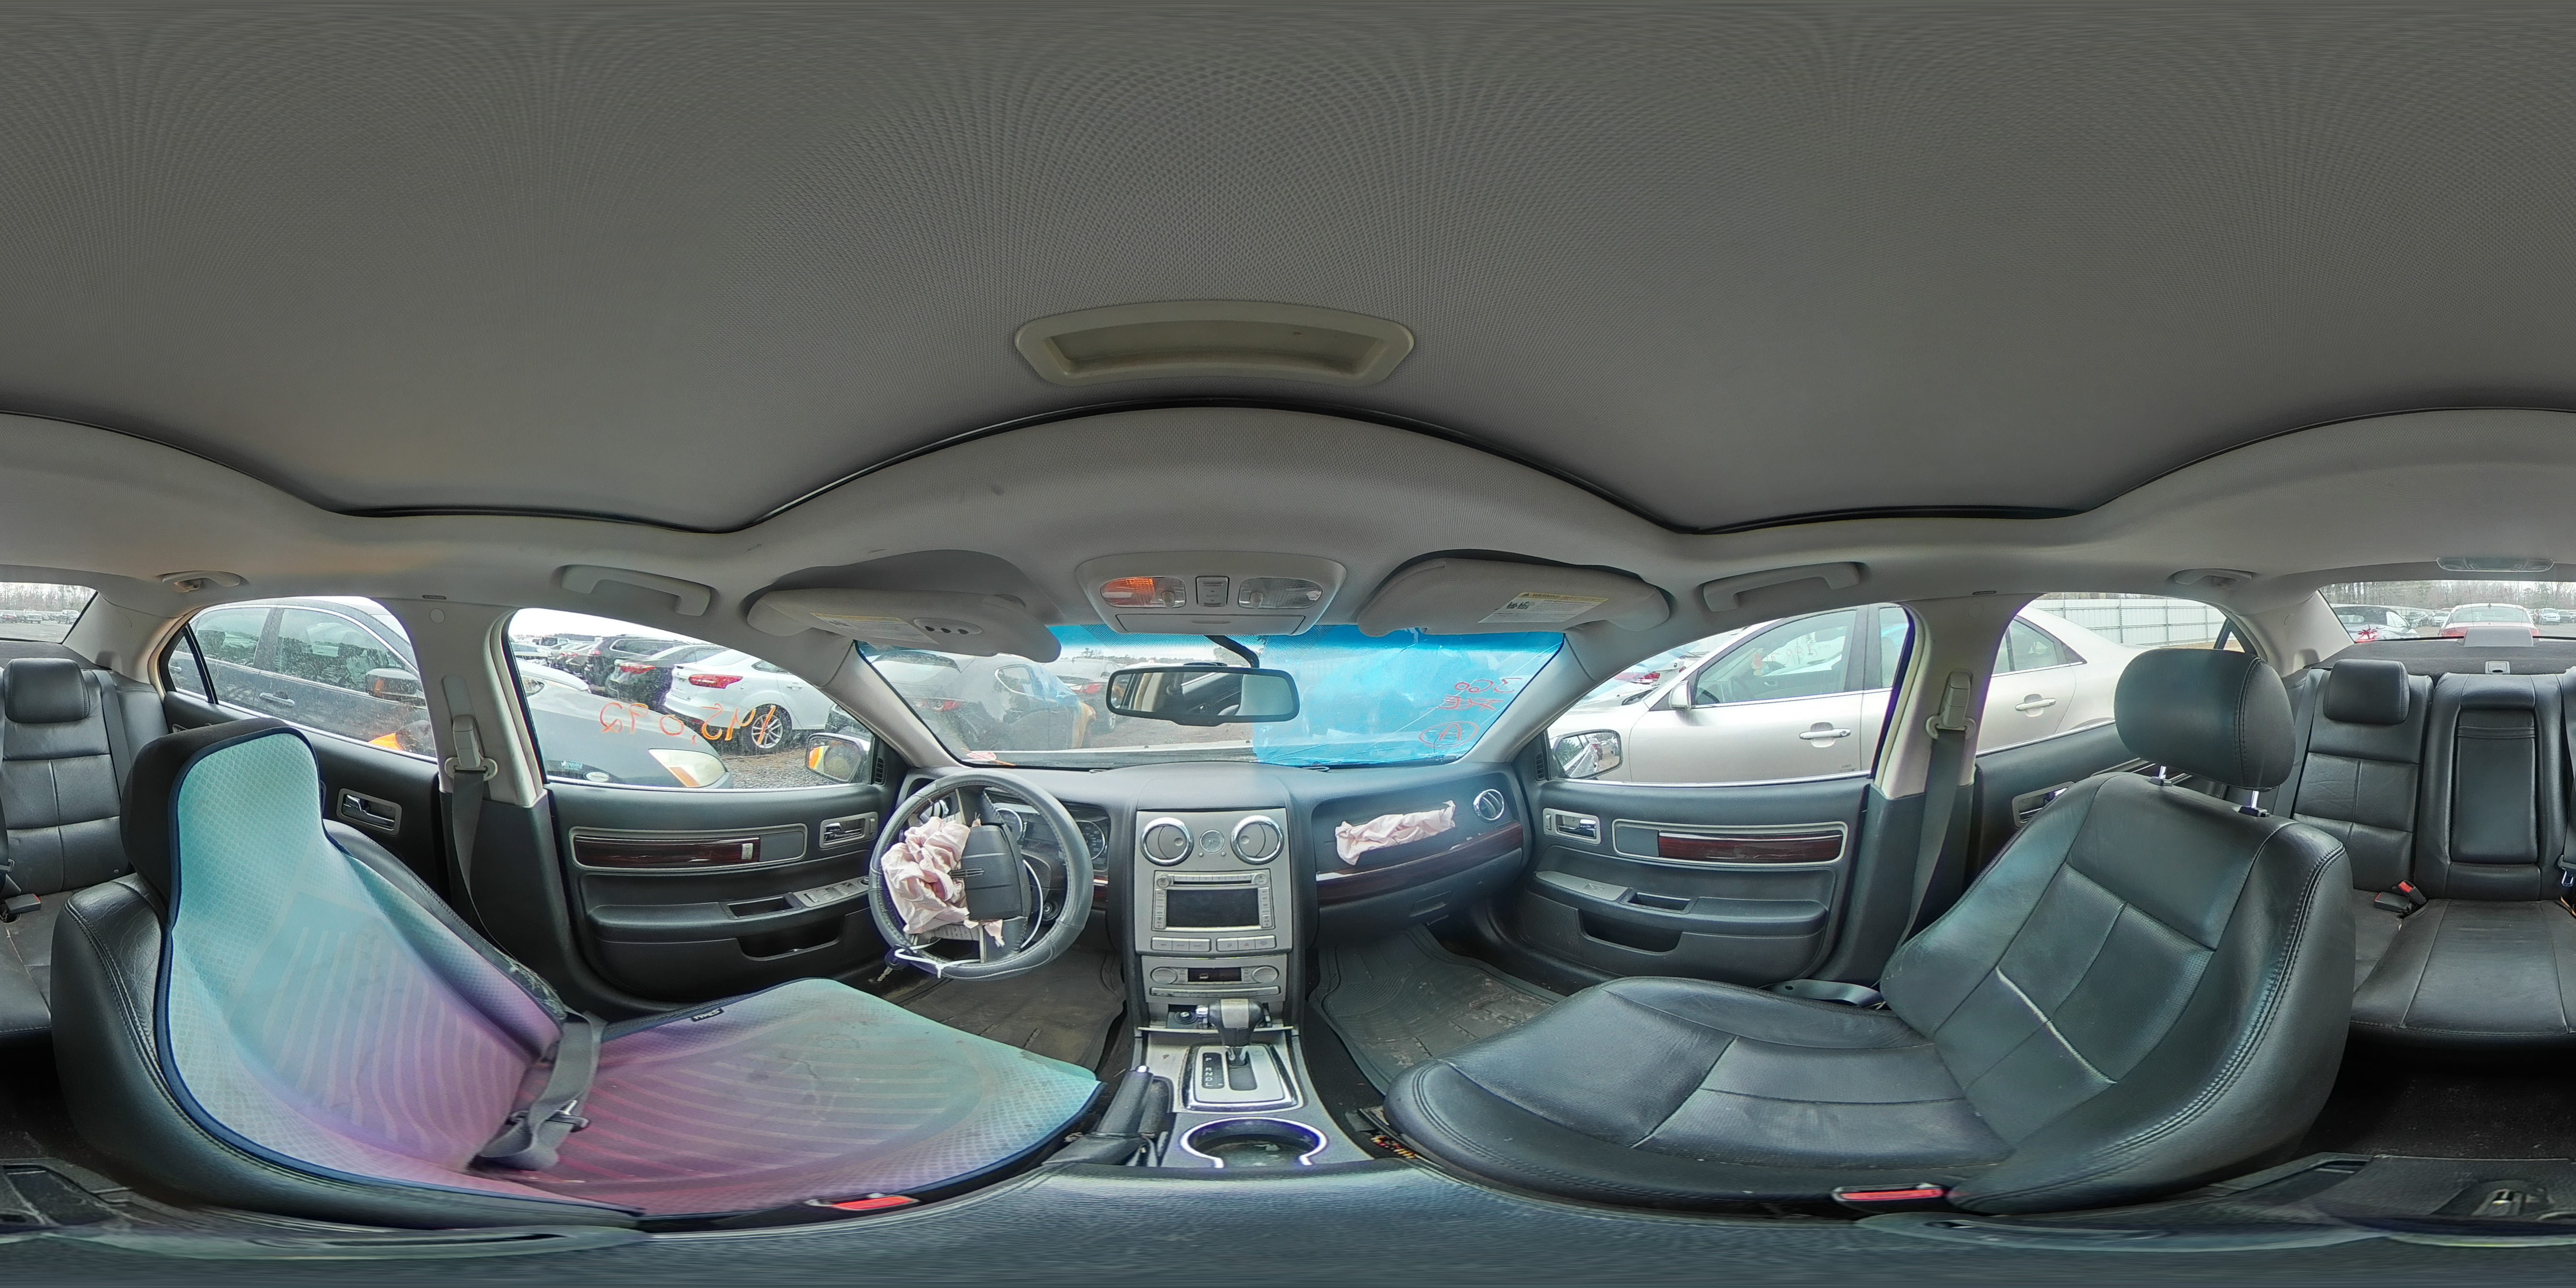 2012 LINCOLN MKZ - Other View